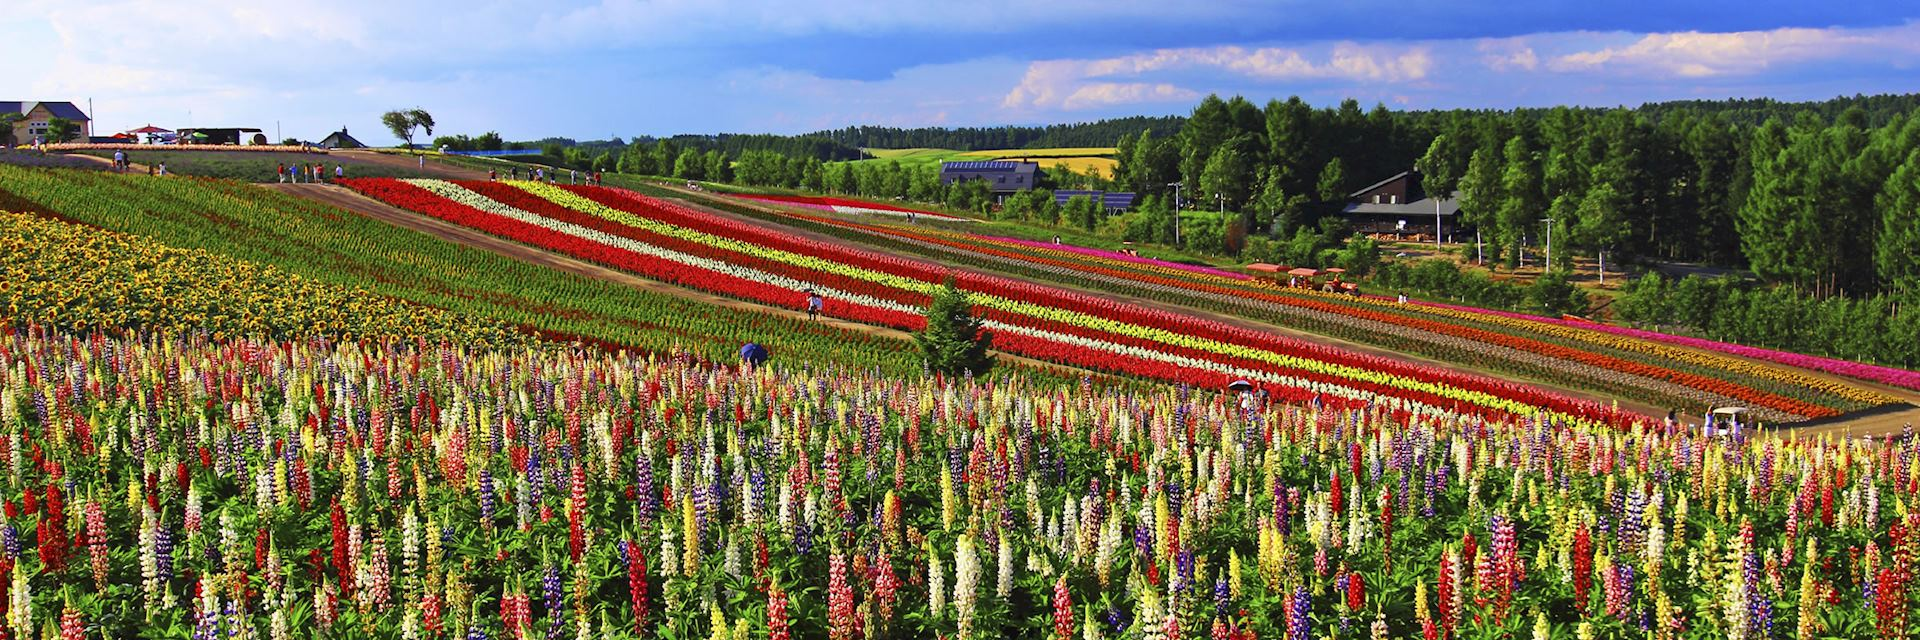 Flower fields around Shikisai Hill in Hokkaido